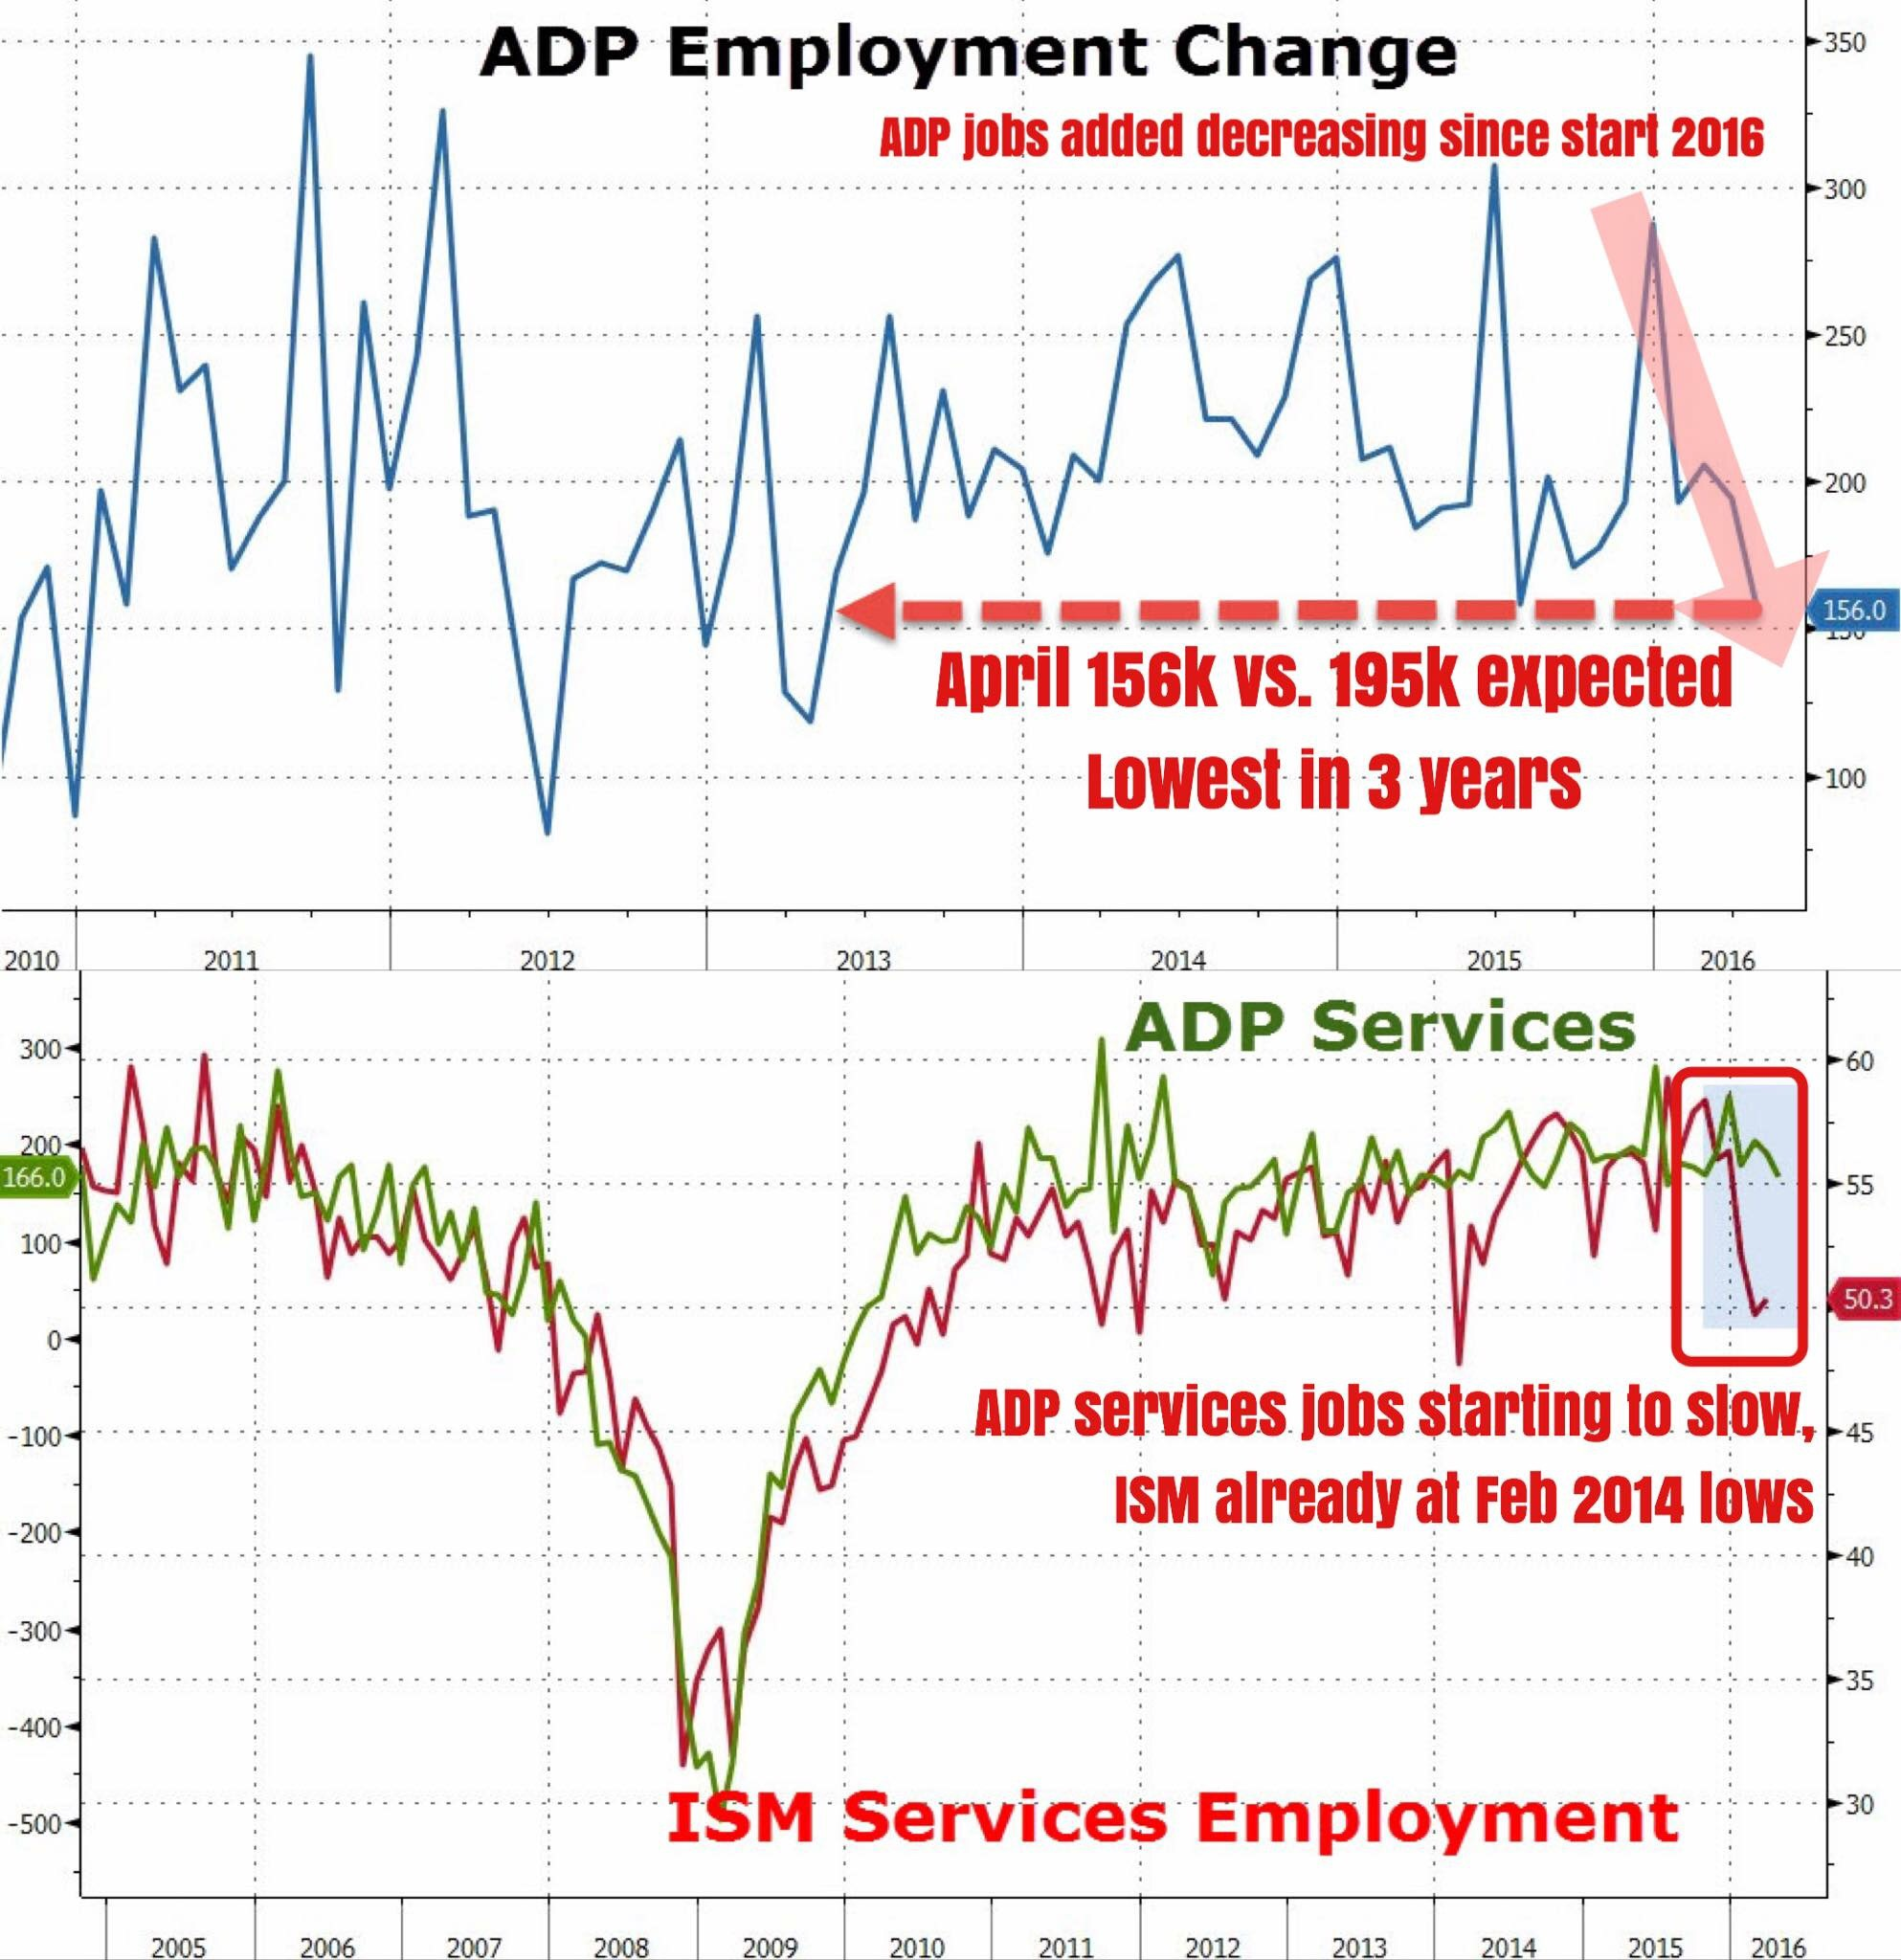 """This isn't good. The just released April ADP employment came in at +156,000 jobs added vs. expectations of +195,000, a huge miss and puts the rate of jobs growth at the slowest in 3 years. With NFPs upcoming this Friday, this does indeed serve as a grim harbinger for a miss.    Both the ADP and ISM services employment metrics have also declined, with the latter already at early 2014 lows. The situation in manufacturing is even worse.""    Business Of Finance on Facebook, 4 May 2016"